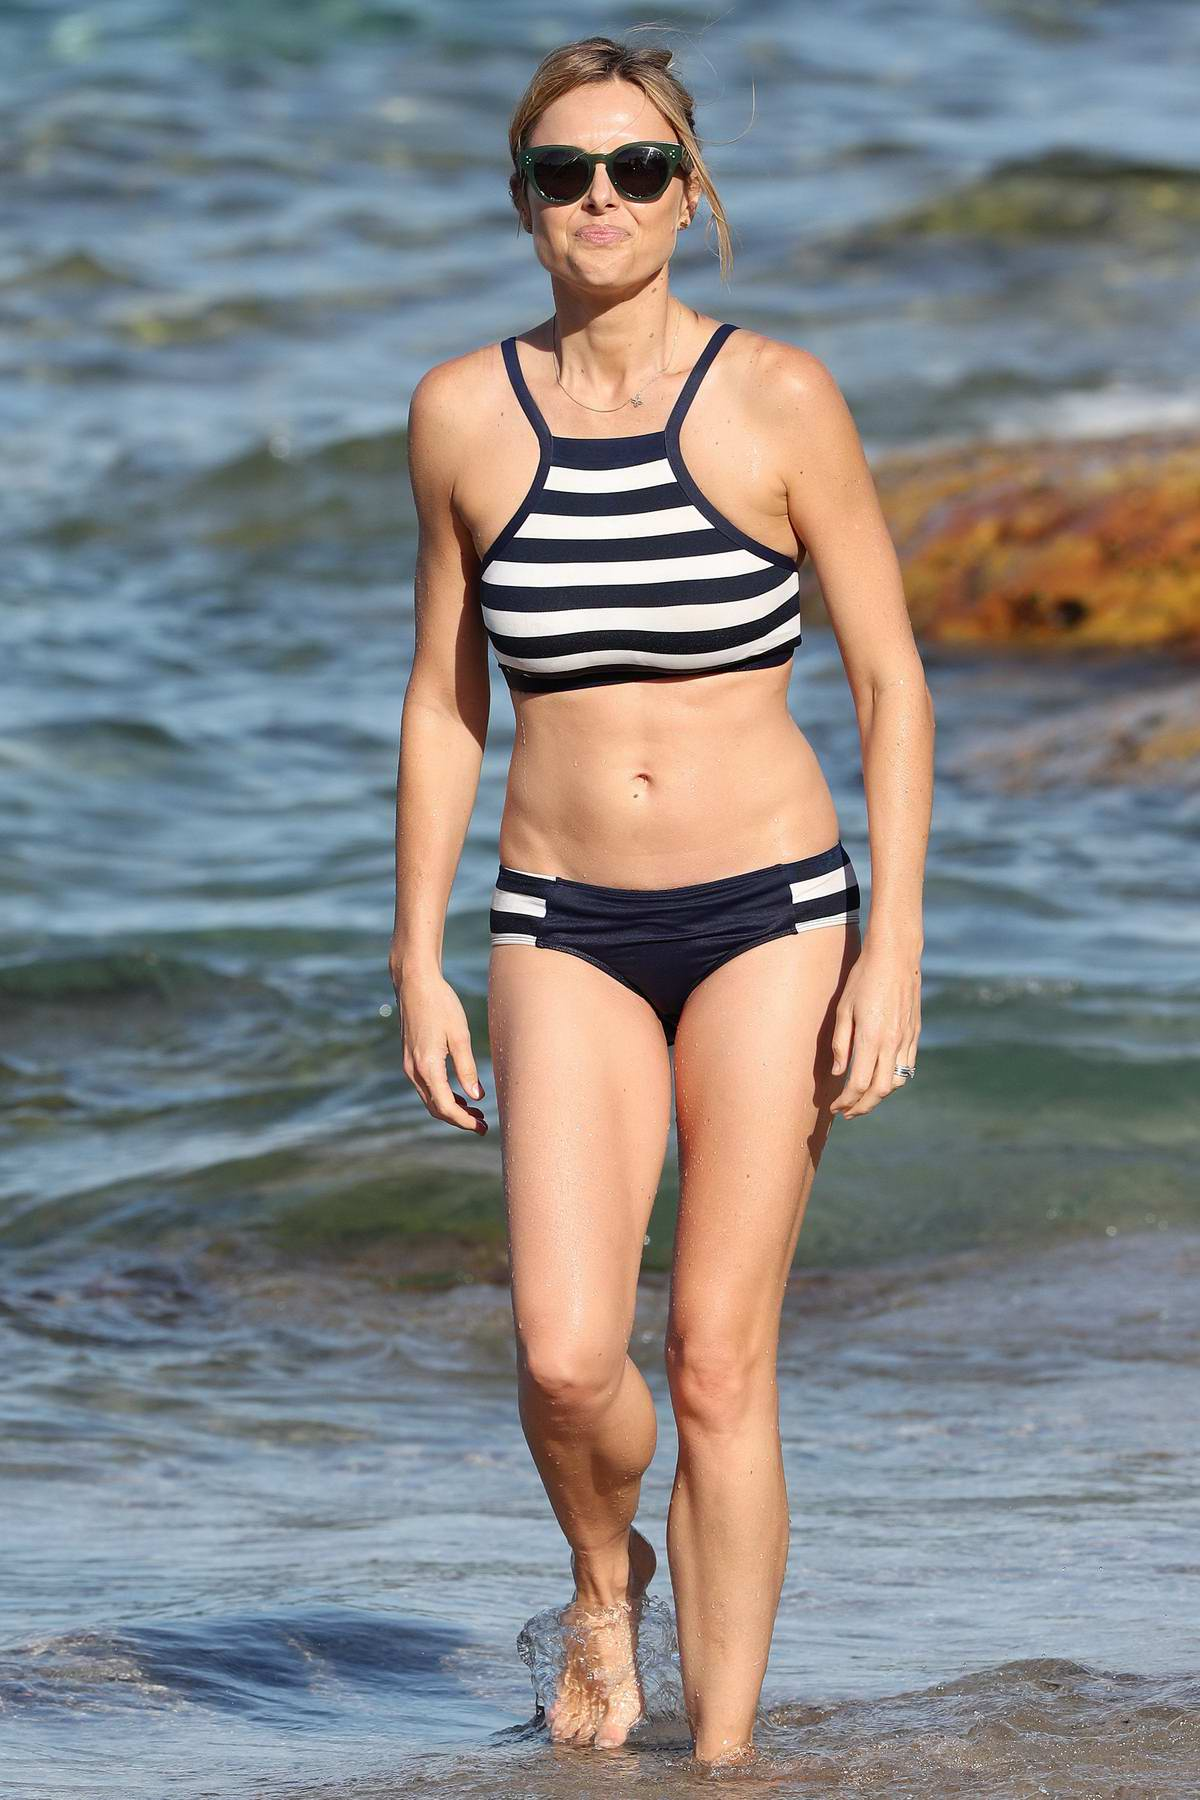 Allison Langdon wears a striped bikini while enjoying a beach day with her family in Sydney, Australia